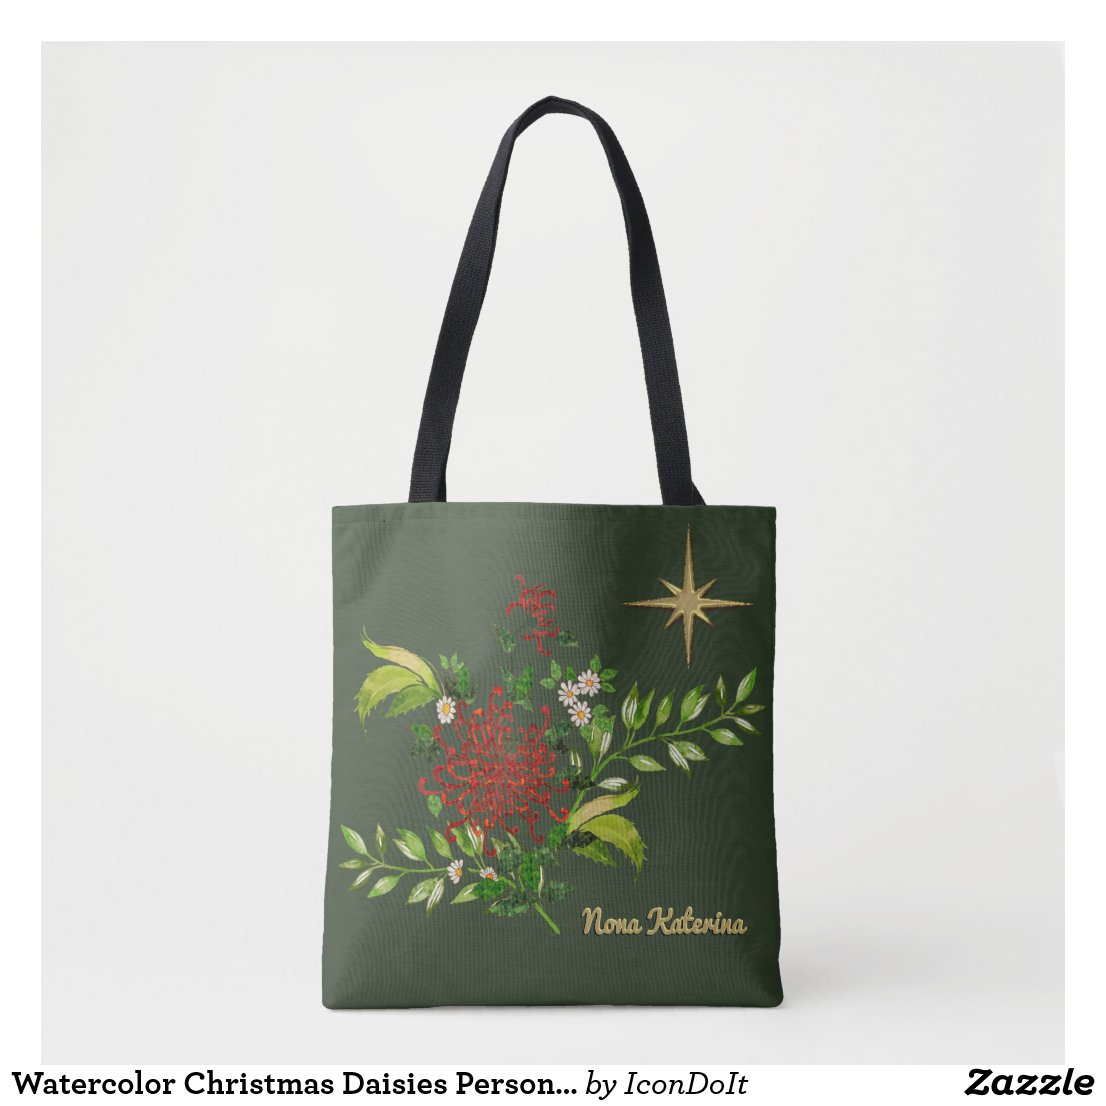 Watercolor Christmas Daisies Personalized Tote Bag